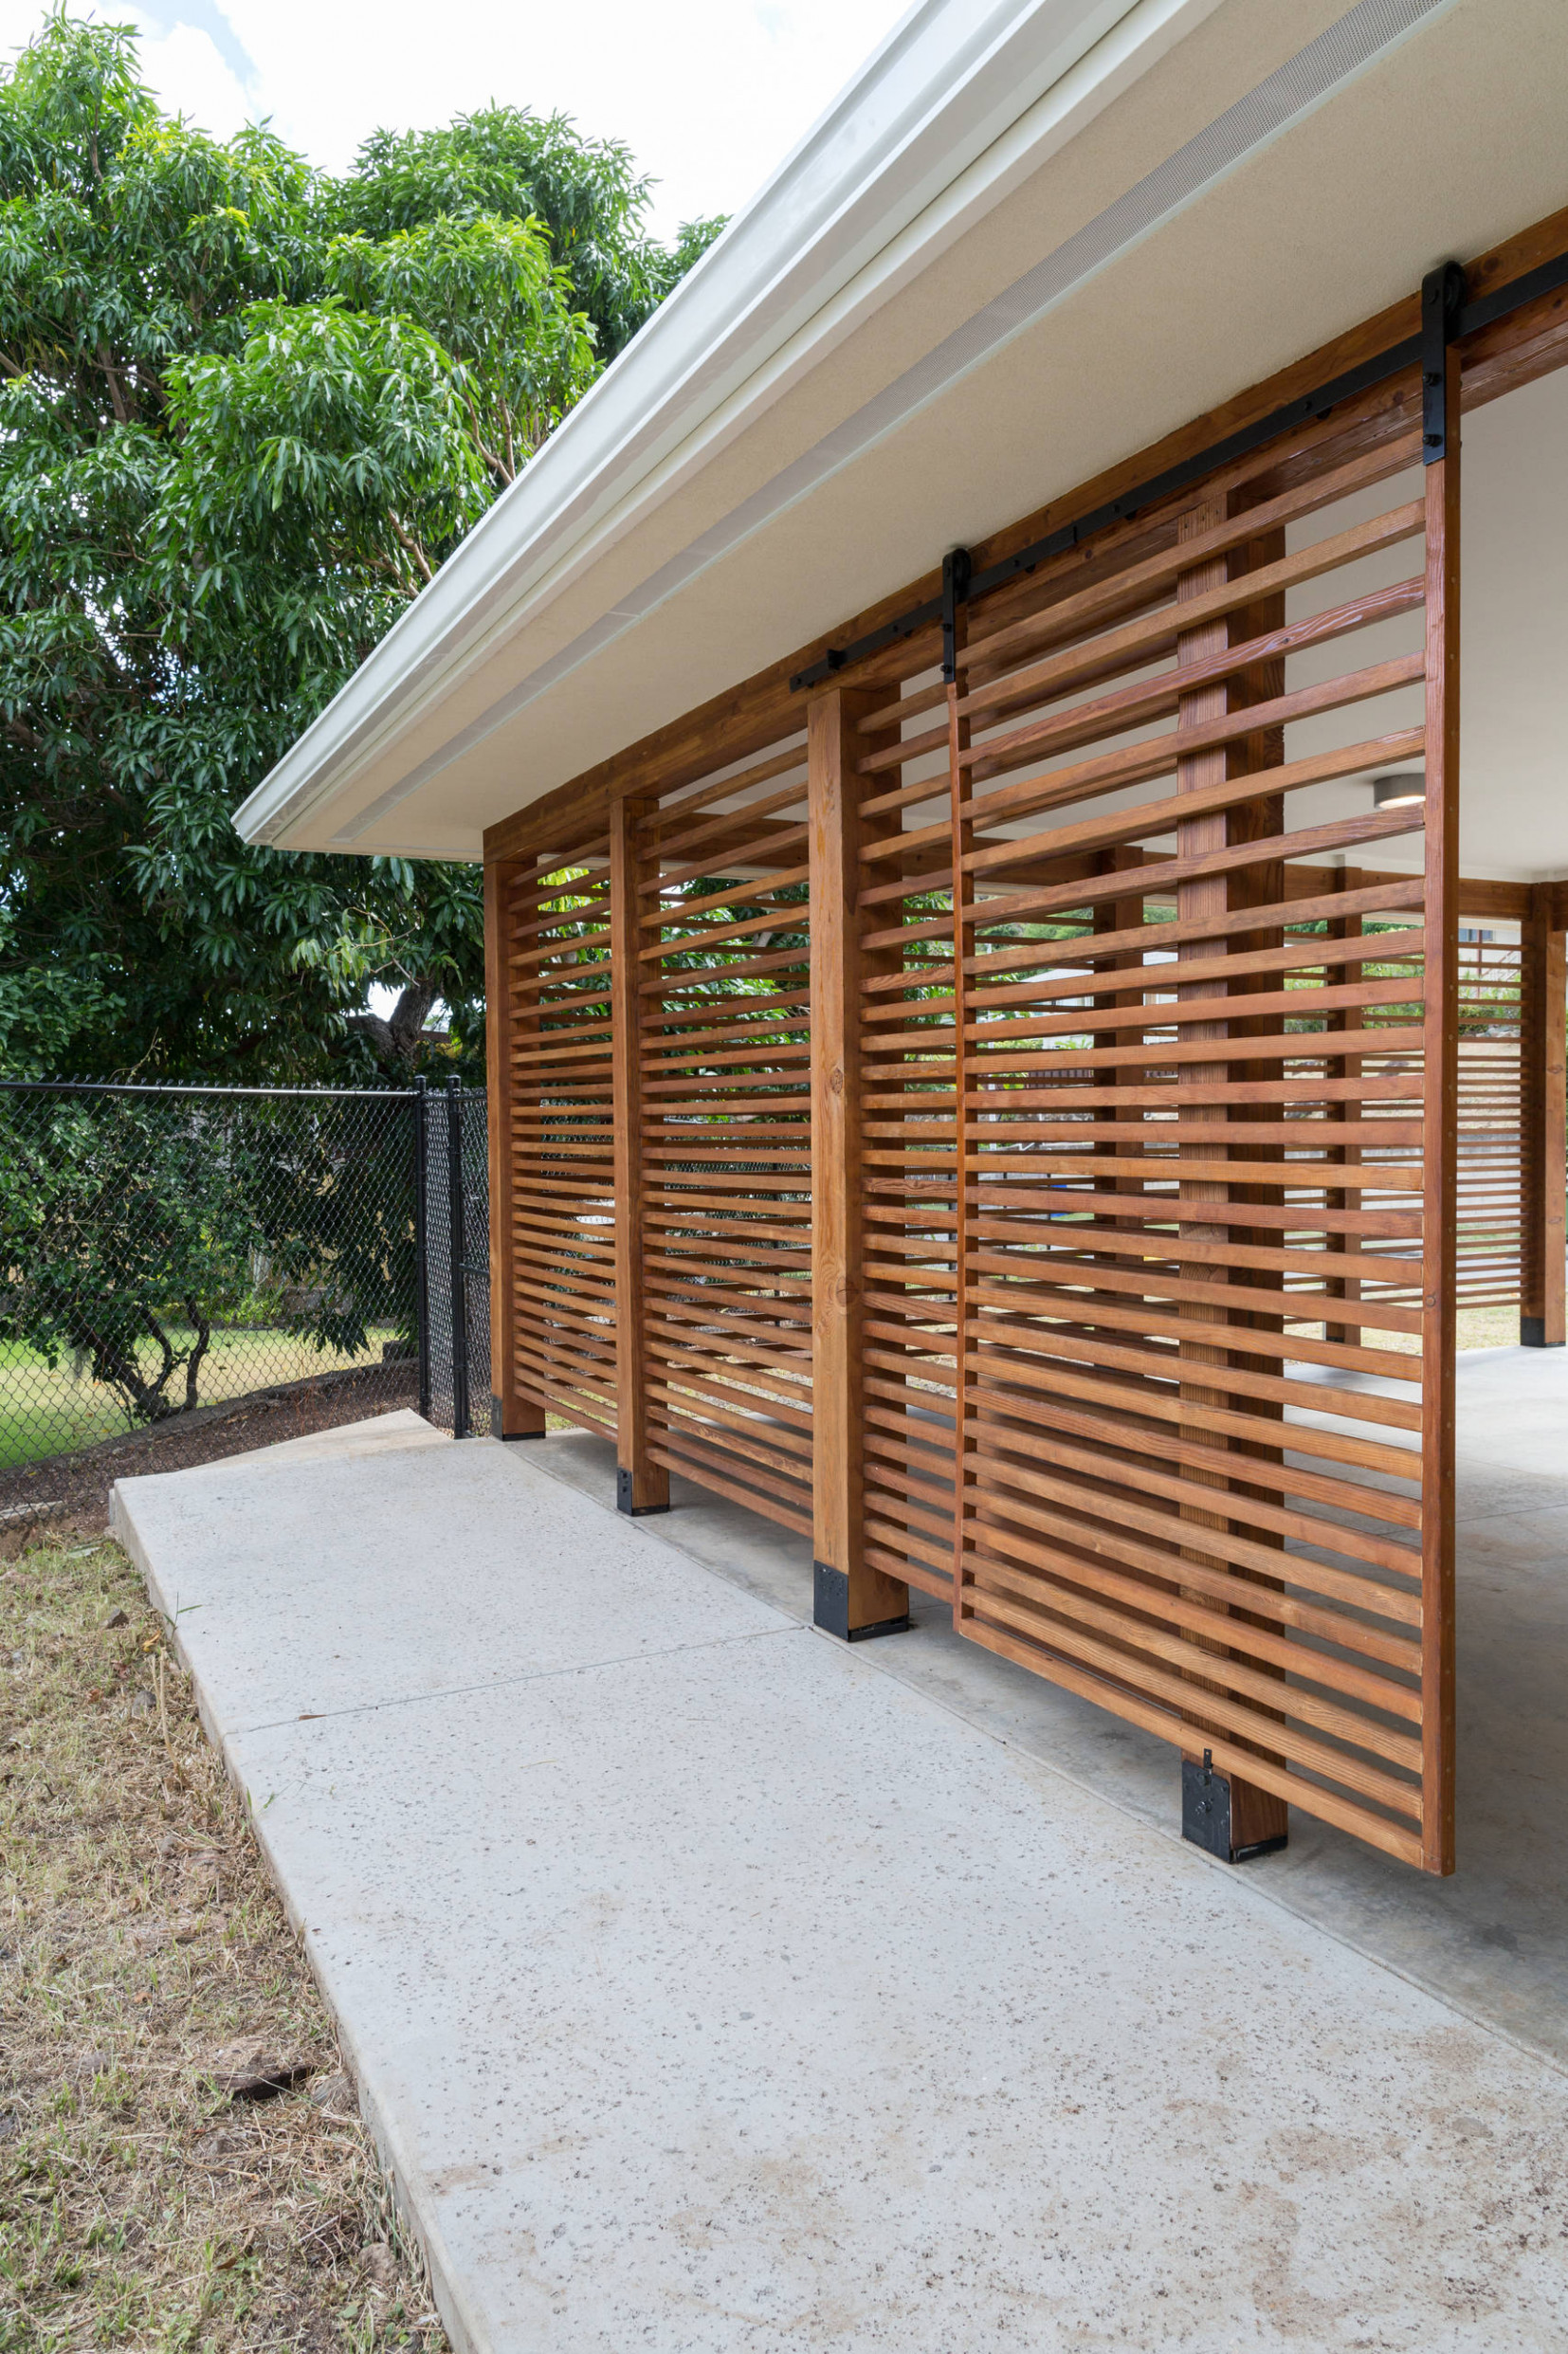 7 Beautiful Carport Pictures & Ideas | Houzz